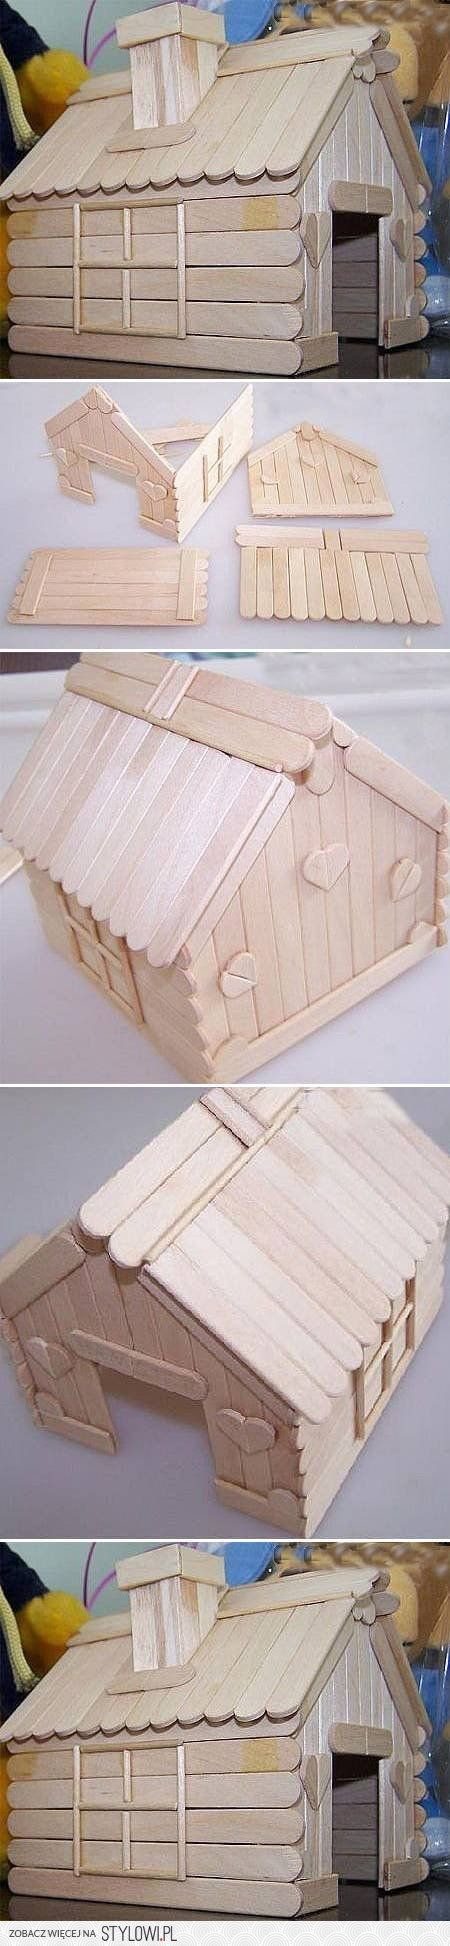 DIY Popsicle Stick House DIY Projects | UsefulDIY.com na Stylowi.pl